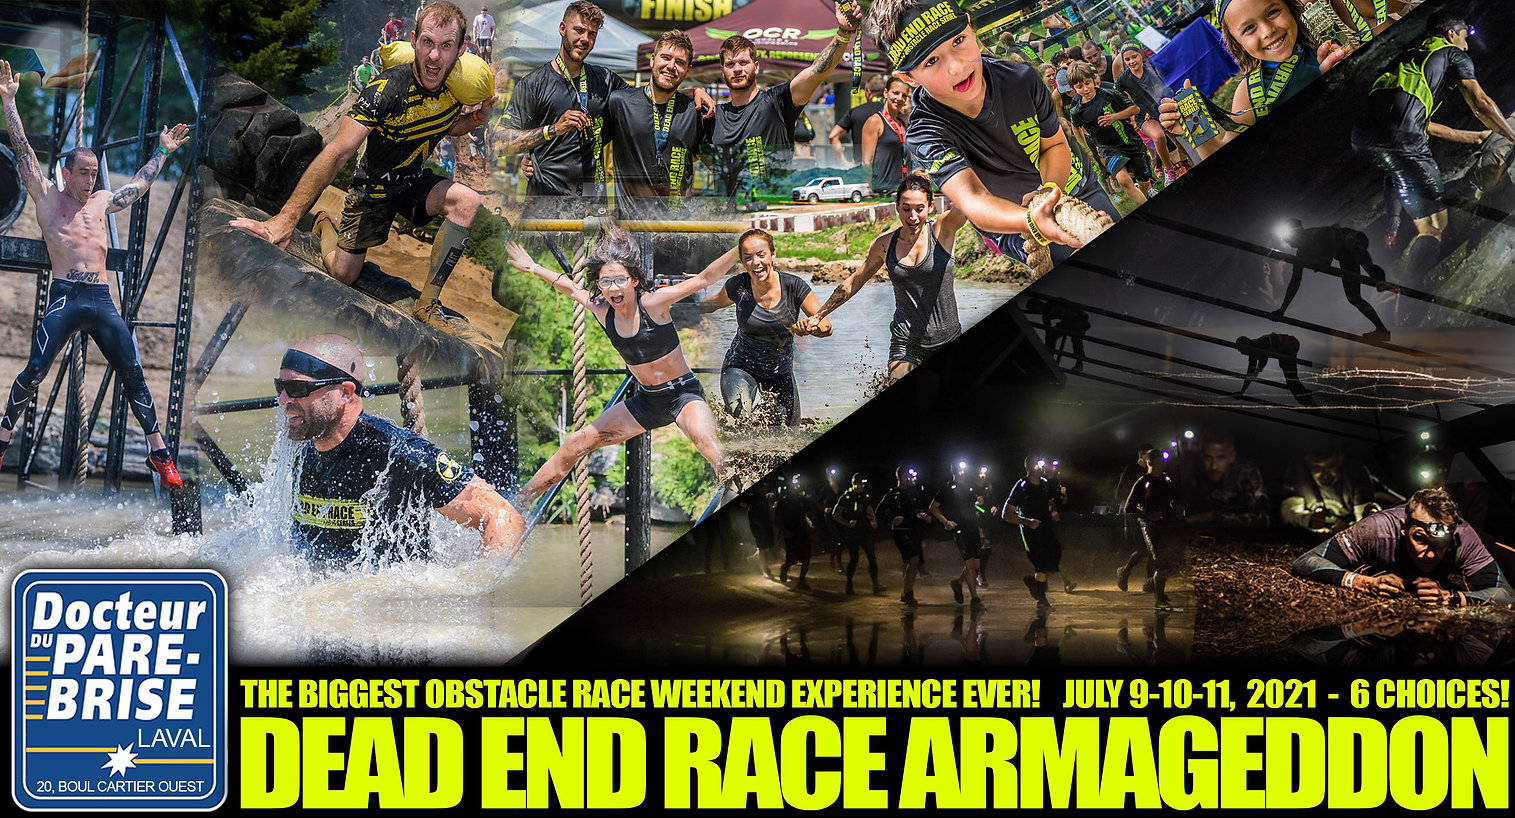 DEAD END RACE ARMAGEDDON WEEKEND NIGHT R